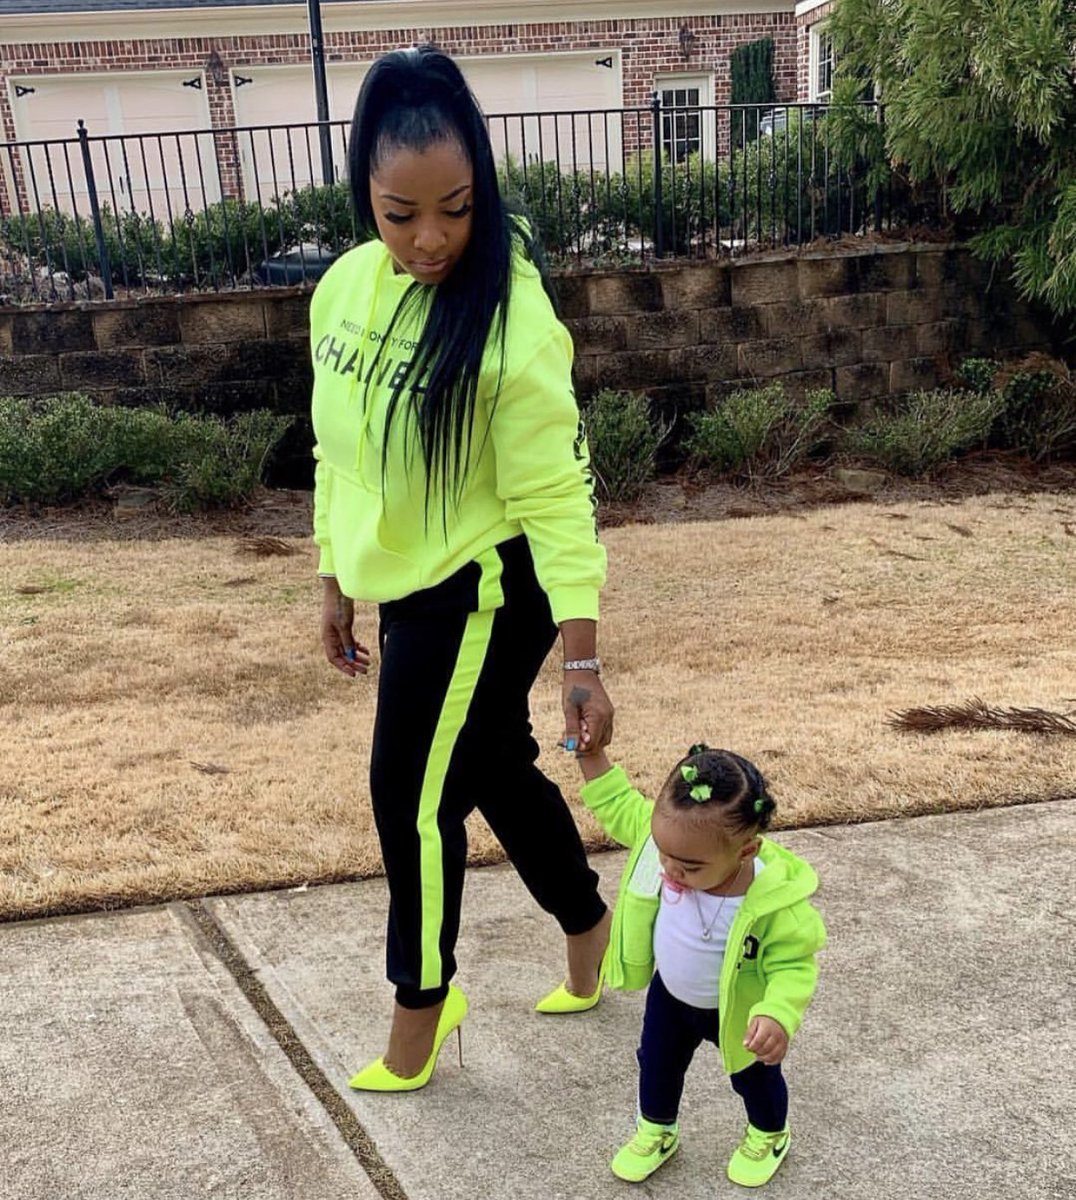 Toya Johnson's Video And Photo With Reign Rushing And Her New Bows Have Fans In Awe